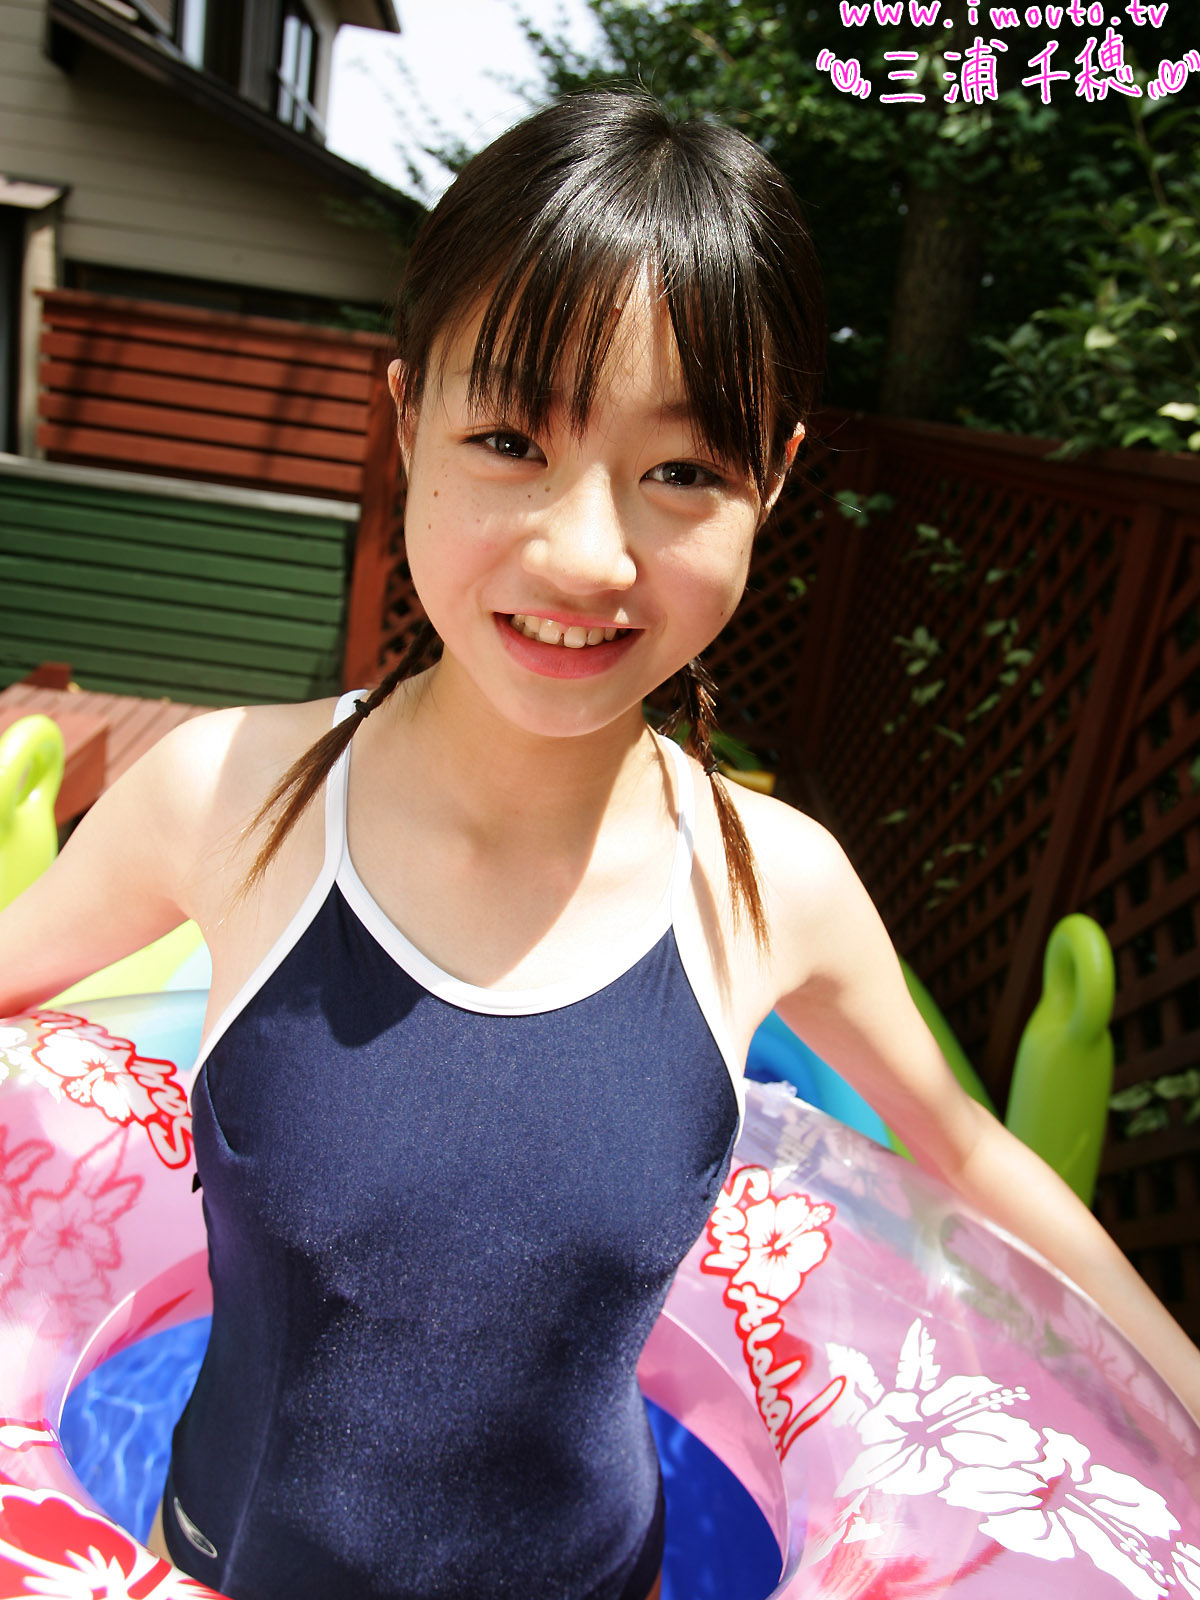 Images Of Chiho Miura 14 Imouto Tv U15 Junior Idol Wallpaper - Sexy ...